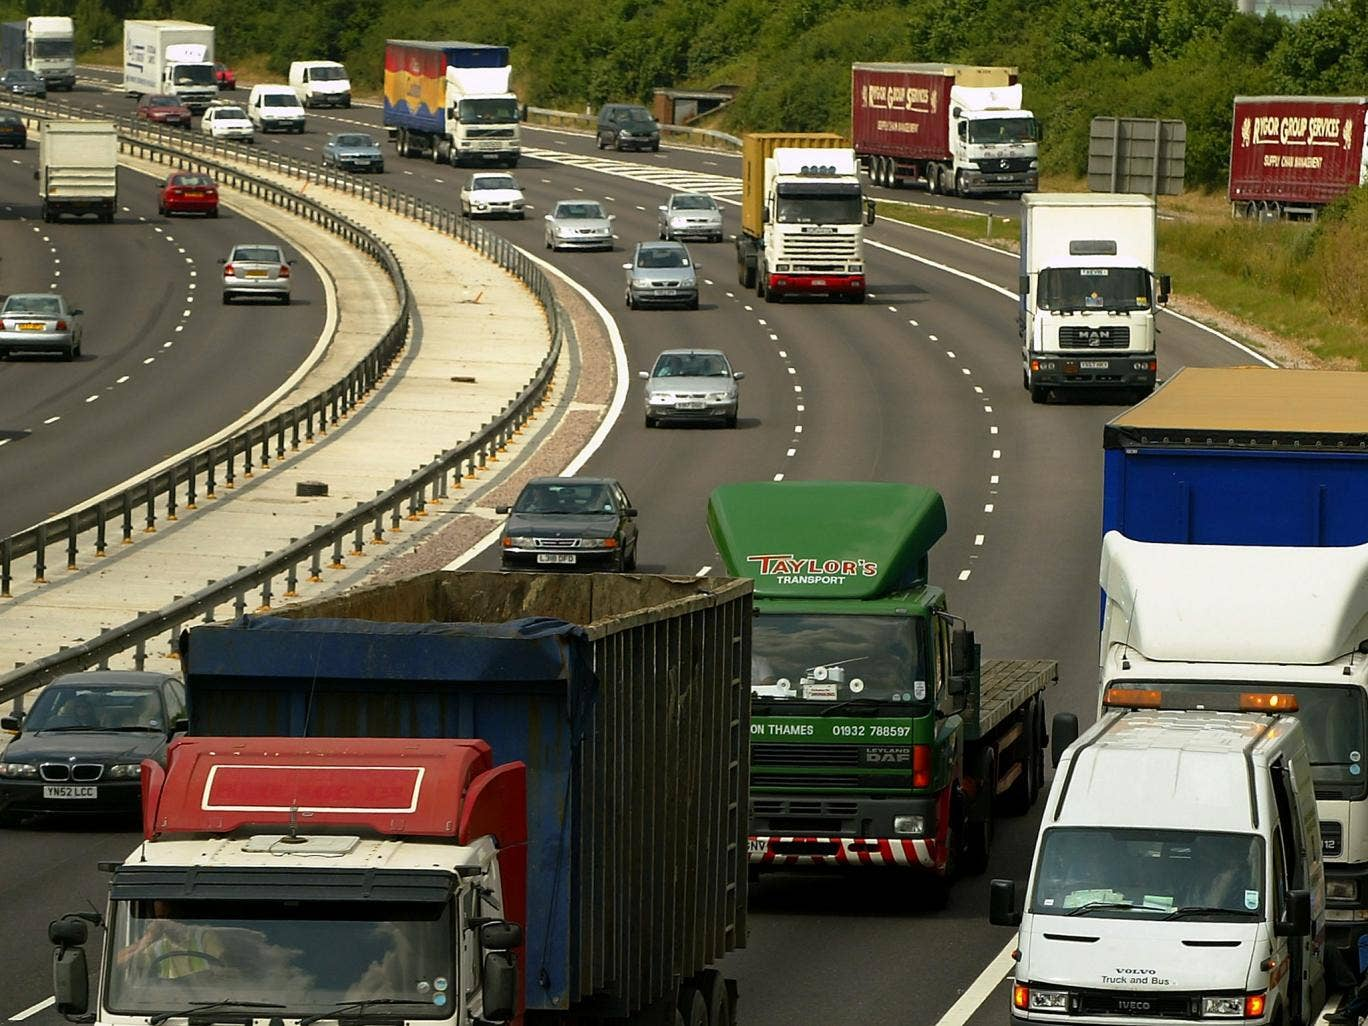 Accident resulted in the closure of five junctions of the motorway in both directions